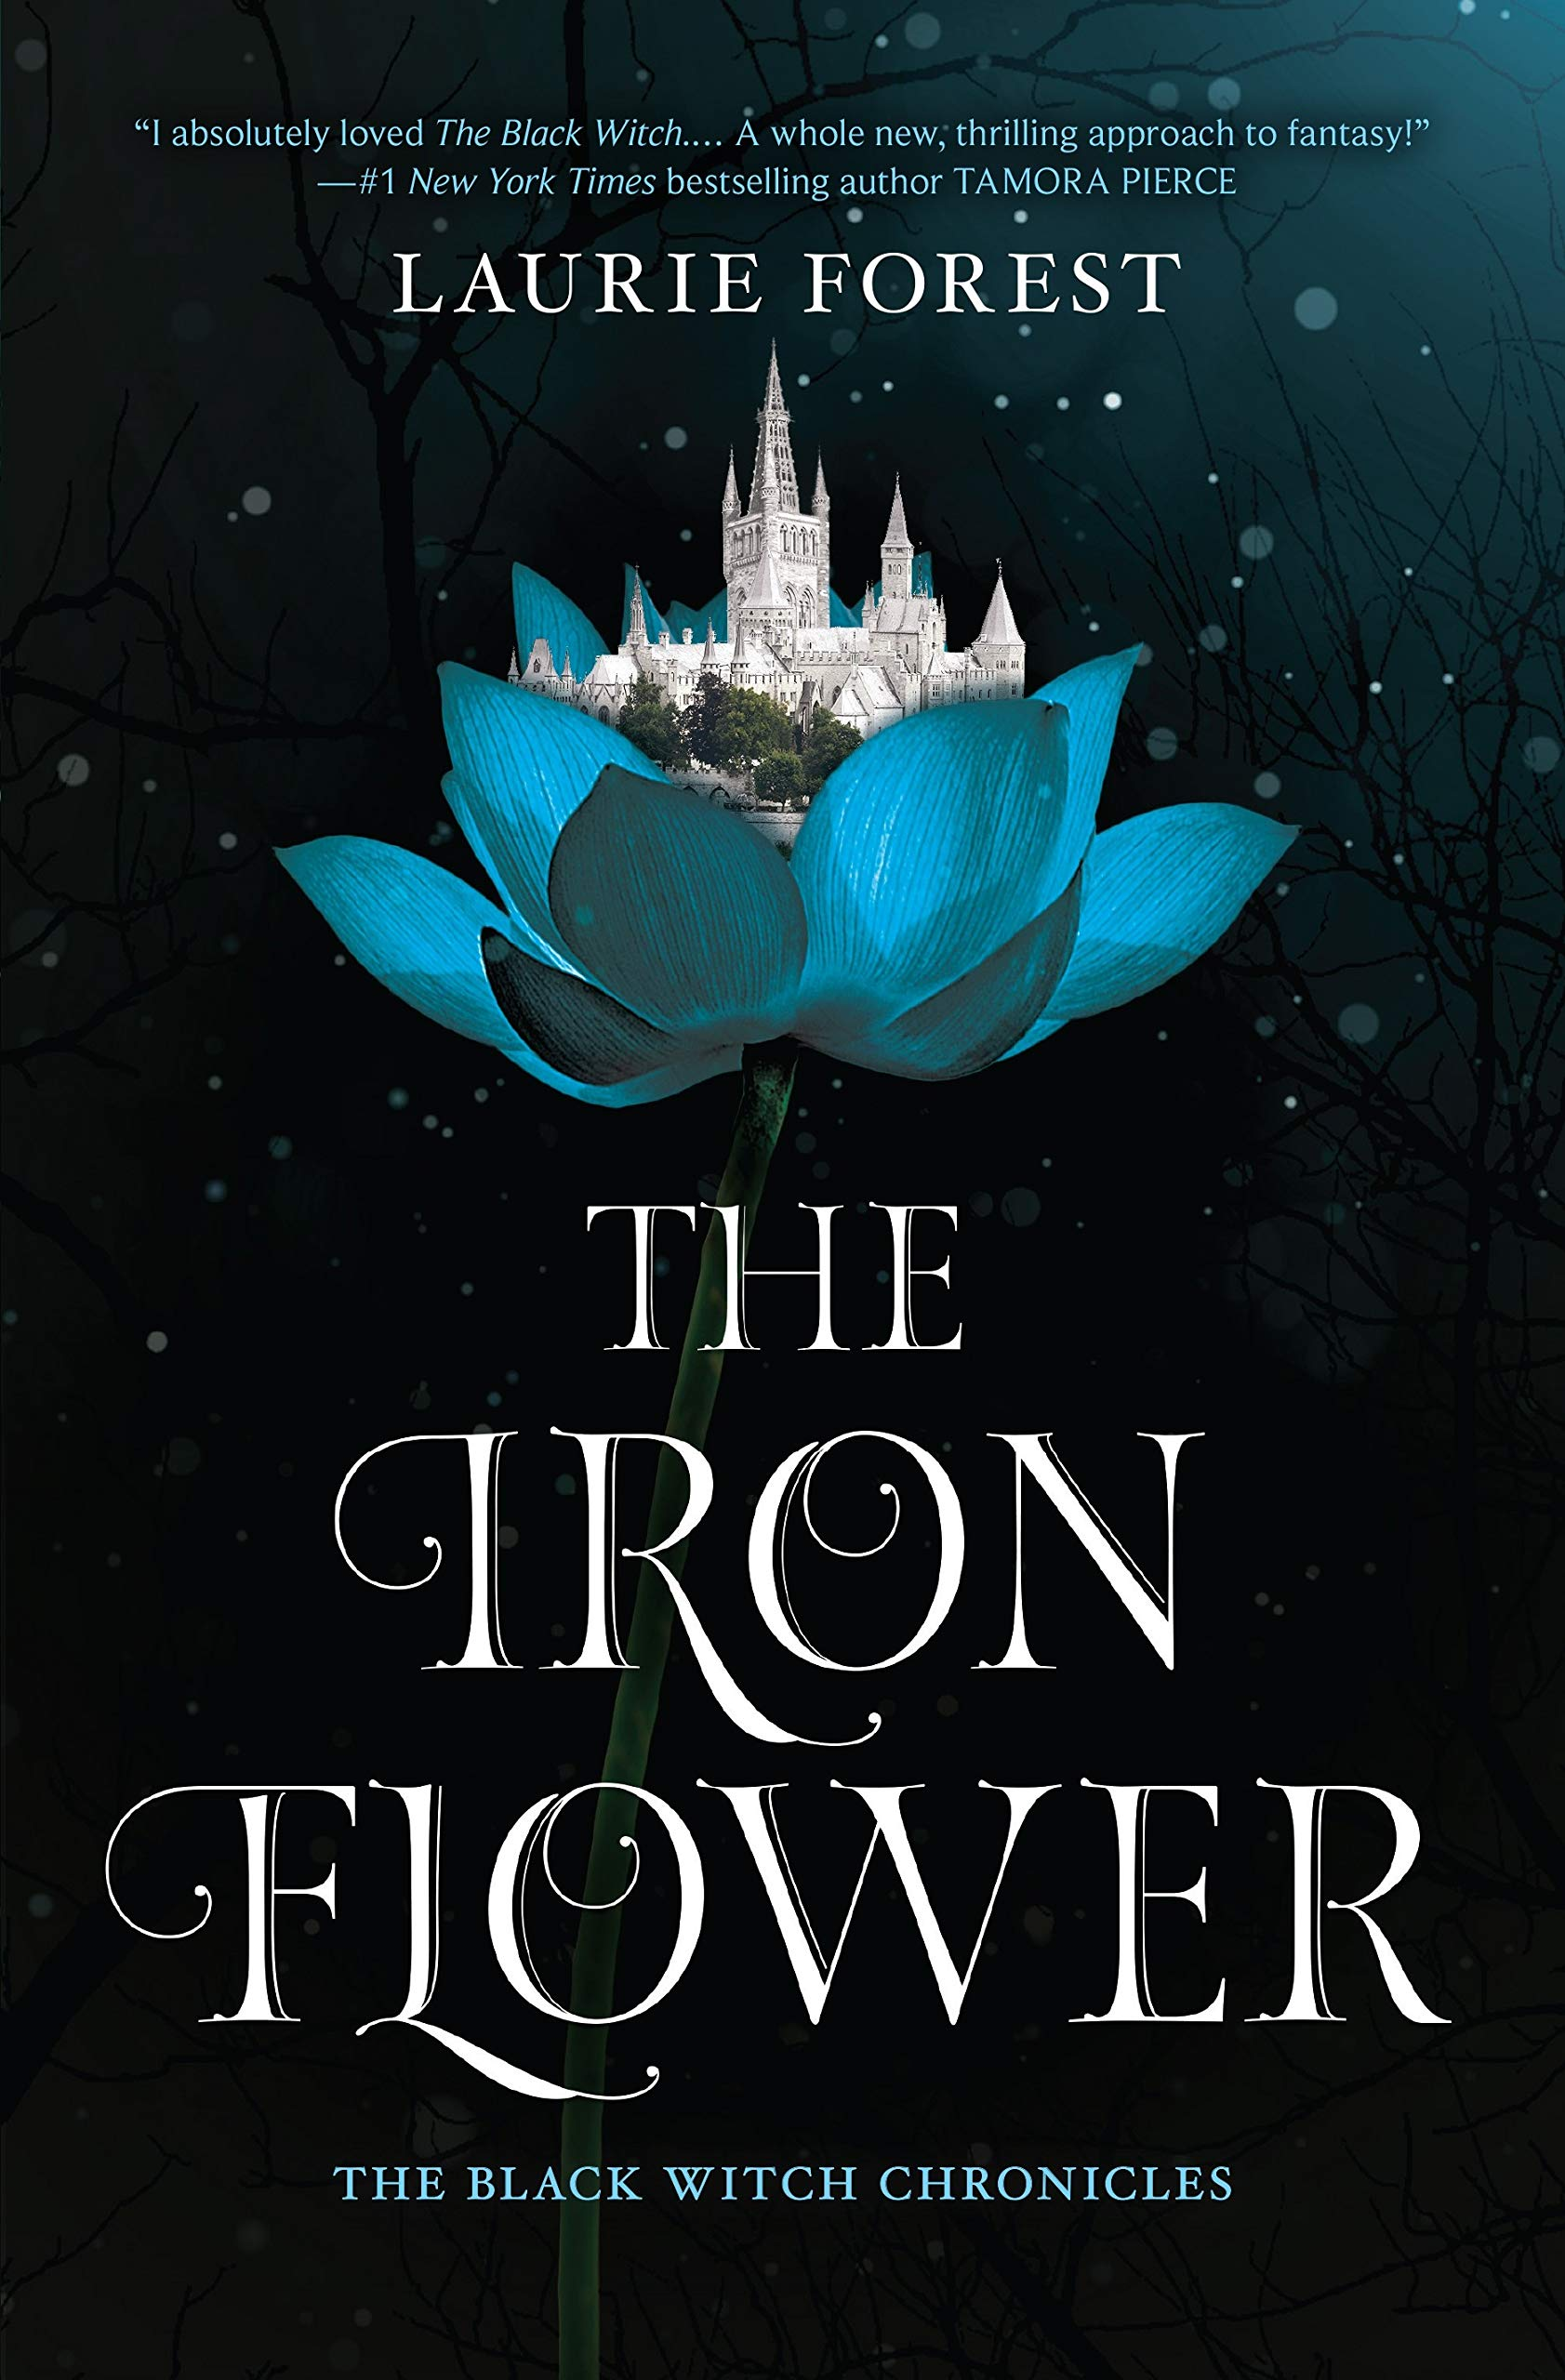 Amazon.com: The Iron Flower (The Black Witch Chronicles ...